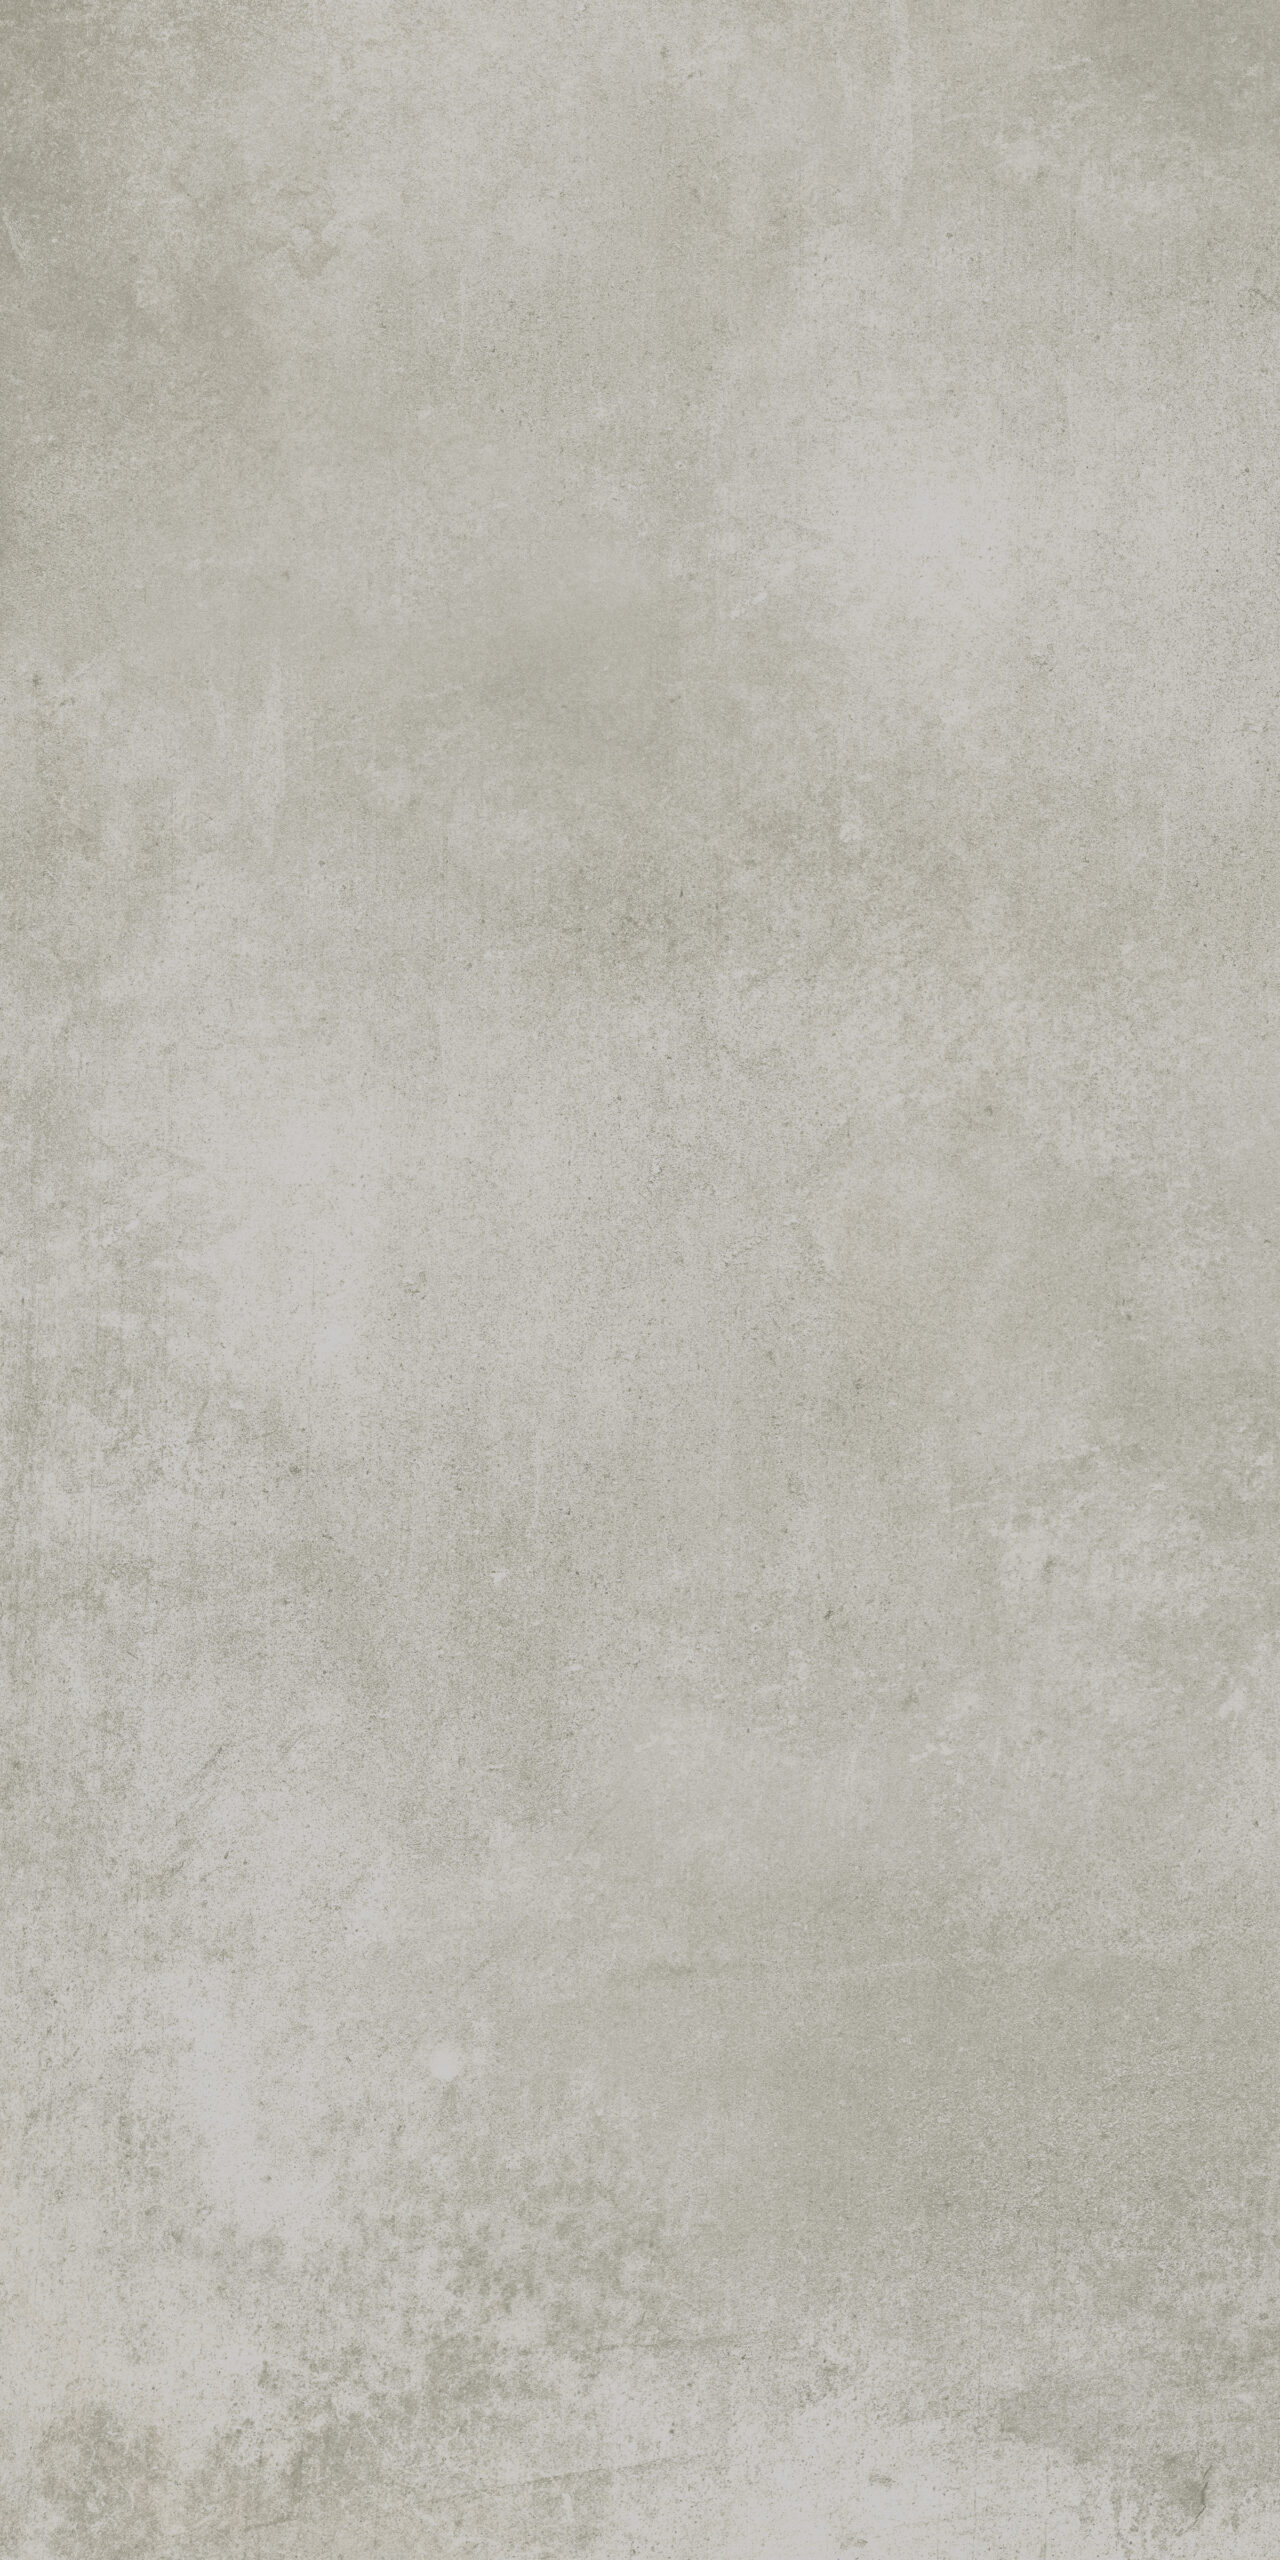 65 528 16x32 Ceraforge Lithium HD Rectified Porcelain Tile scaled